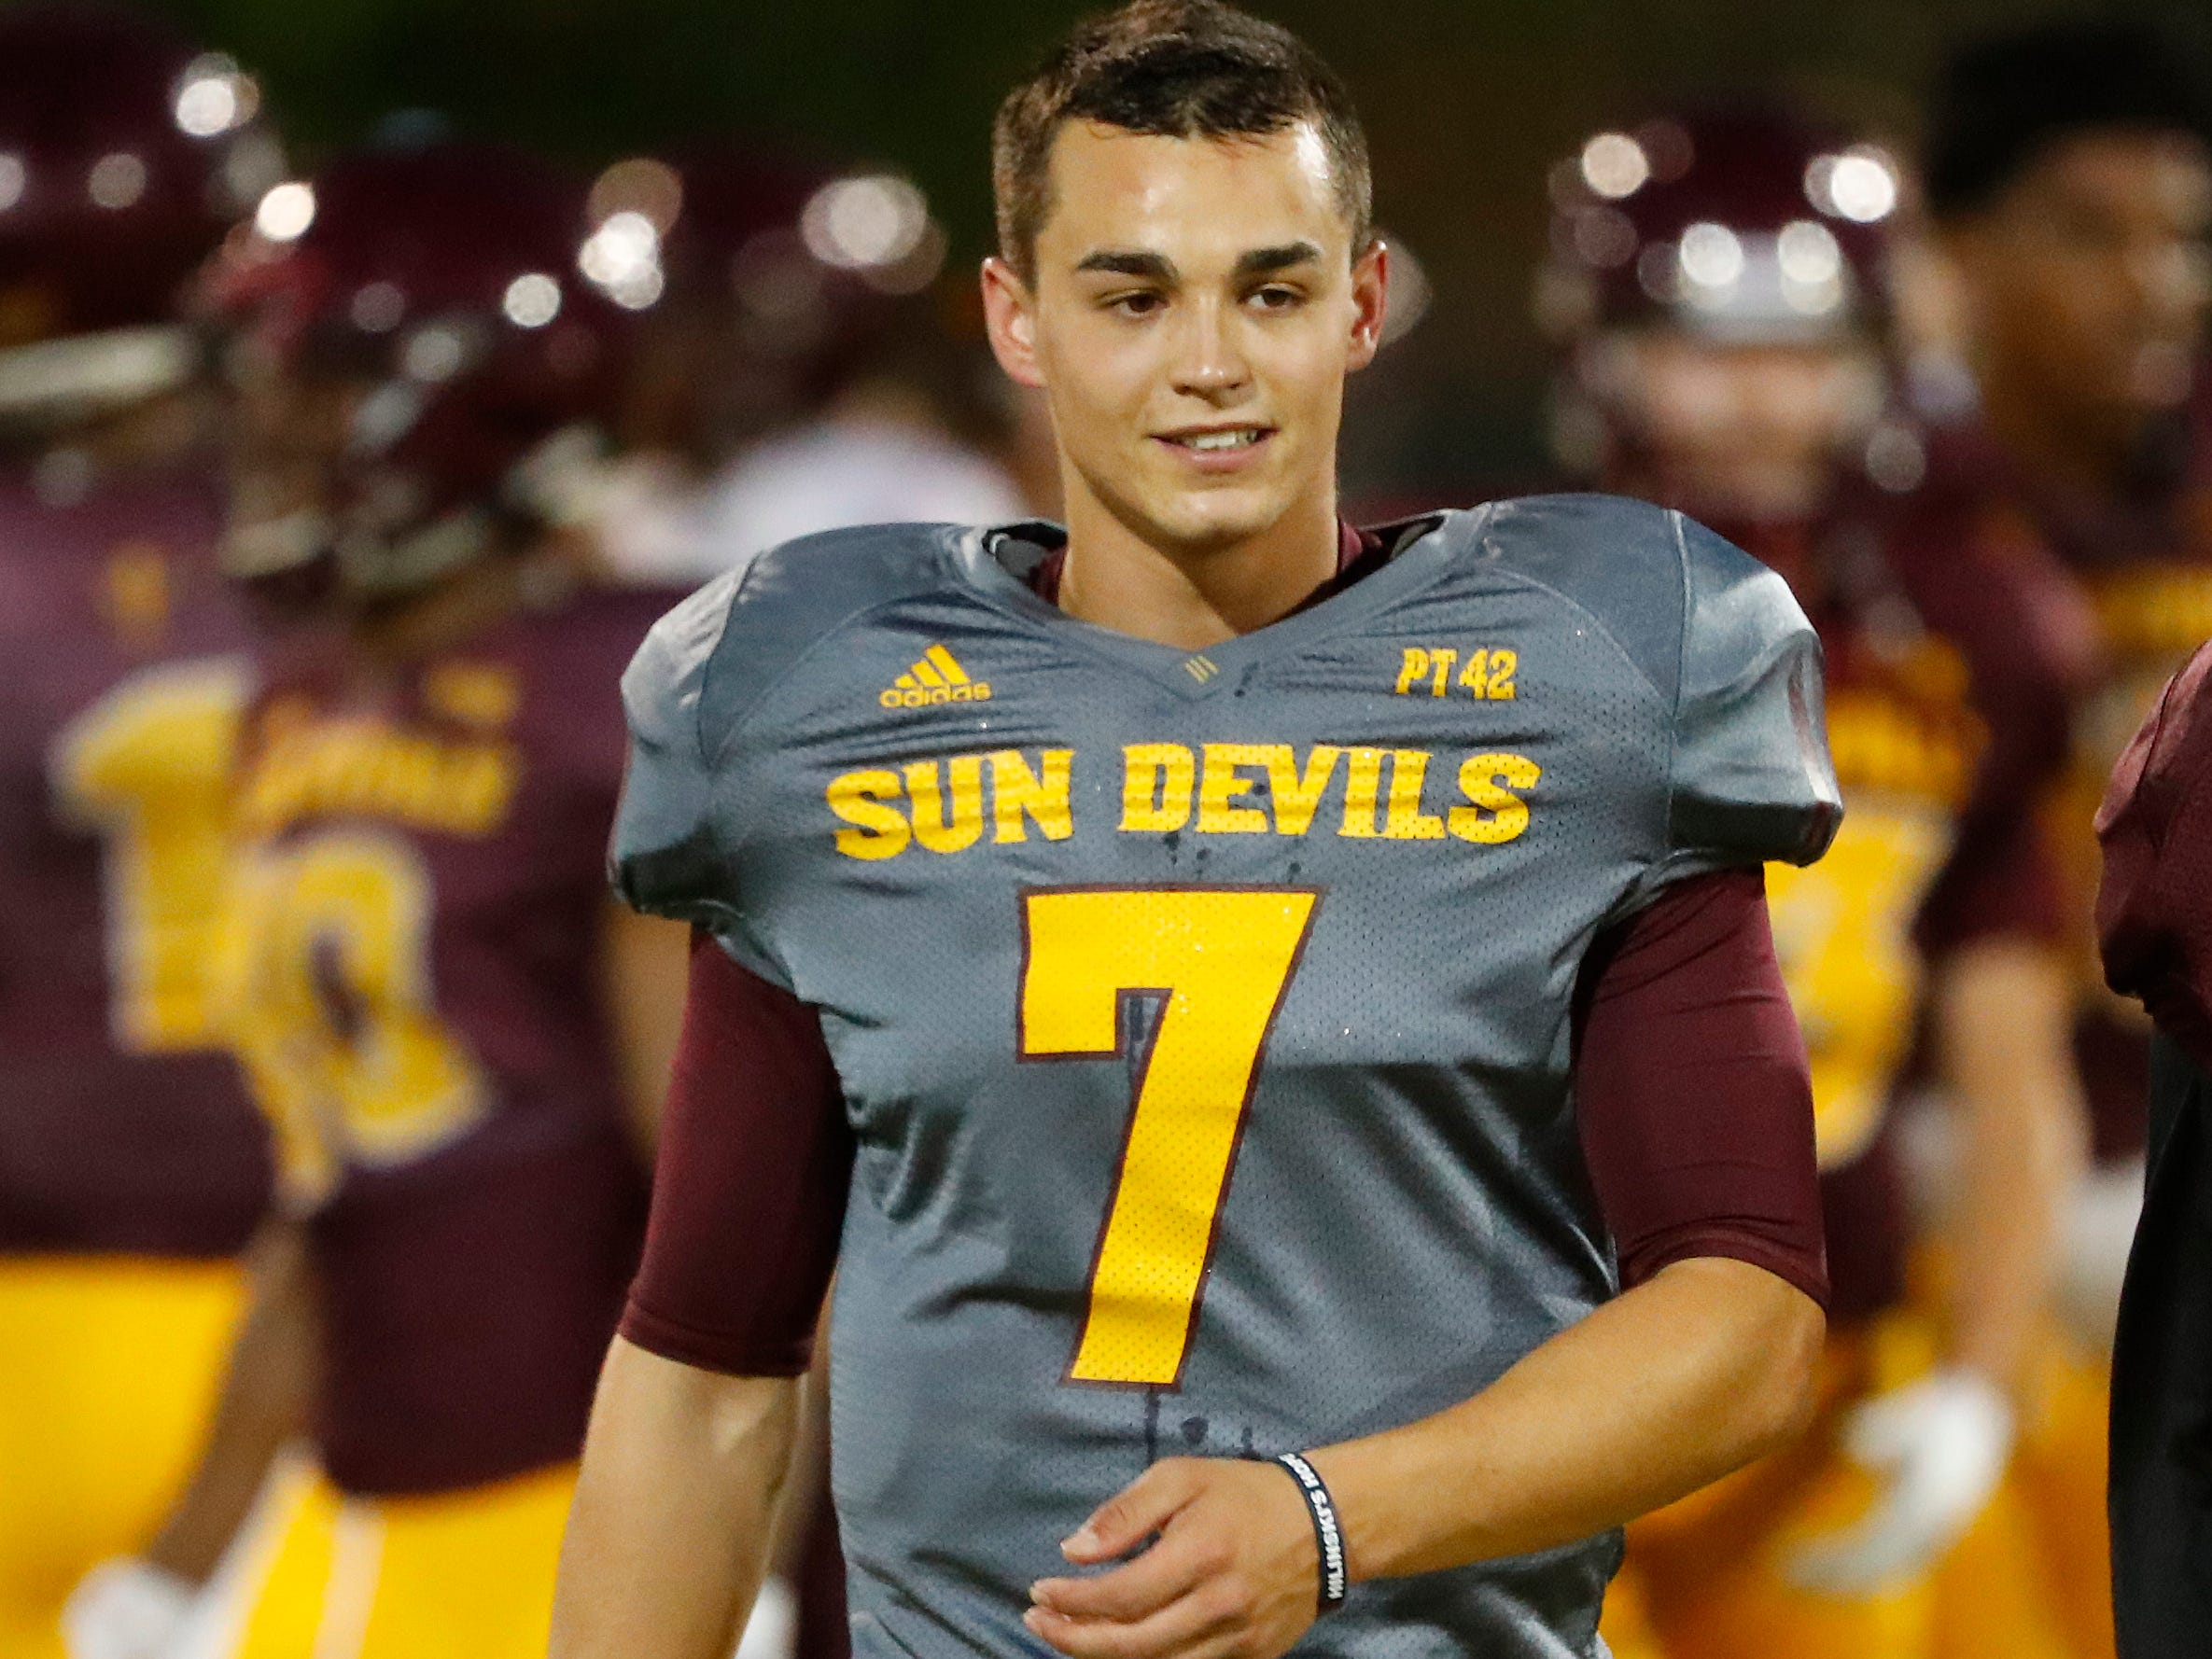 ASU's Beau Barrington (7) walks onto the field during the ASU scrimmage at Kajikawa Practice Fields in Tempe, Ariz. on Aug. 11, 2018.